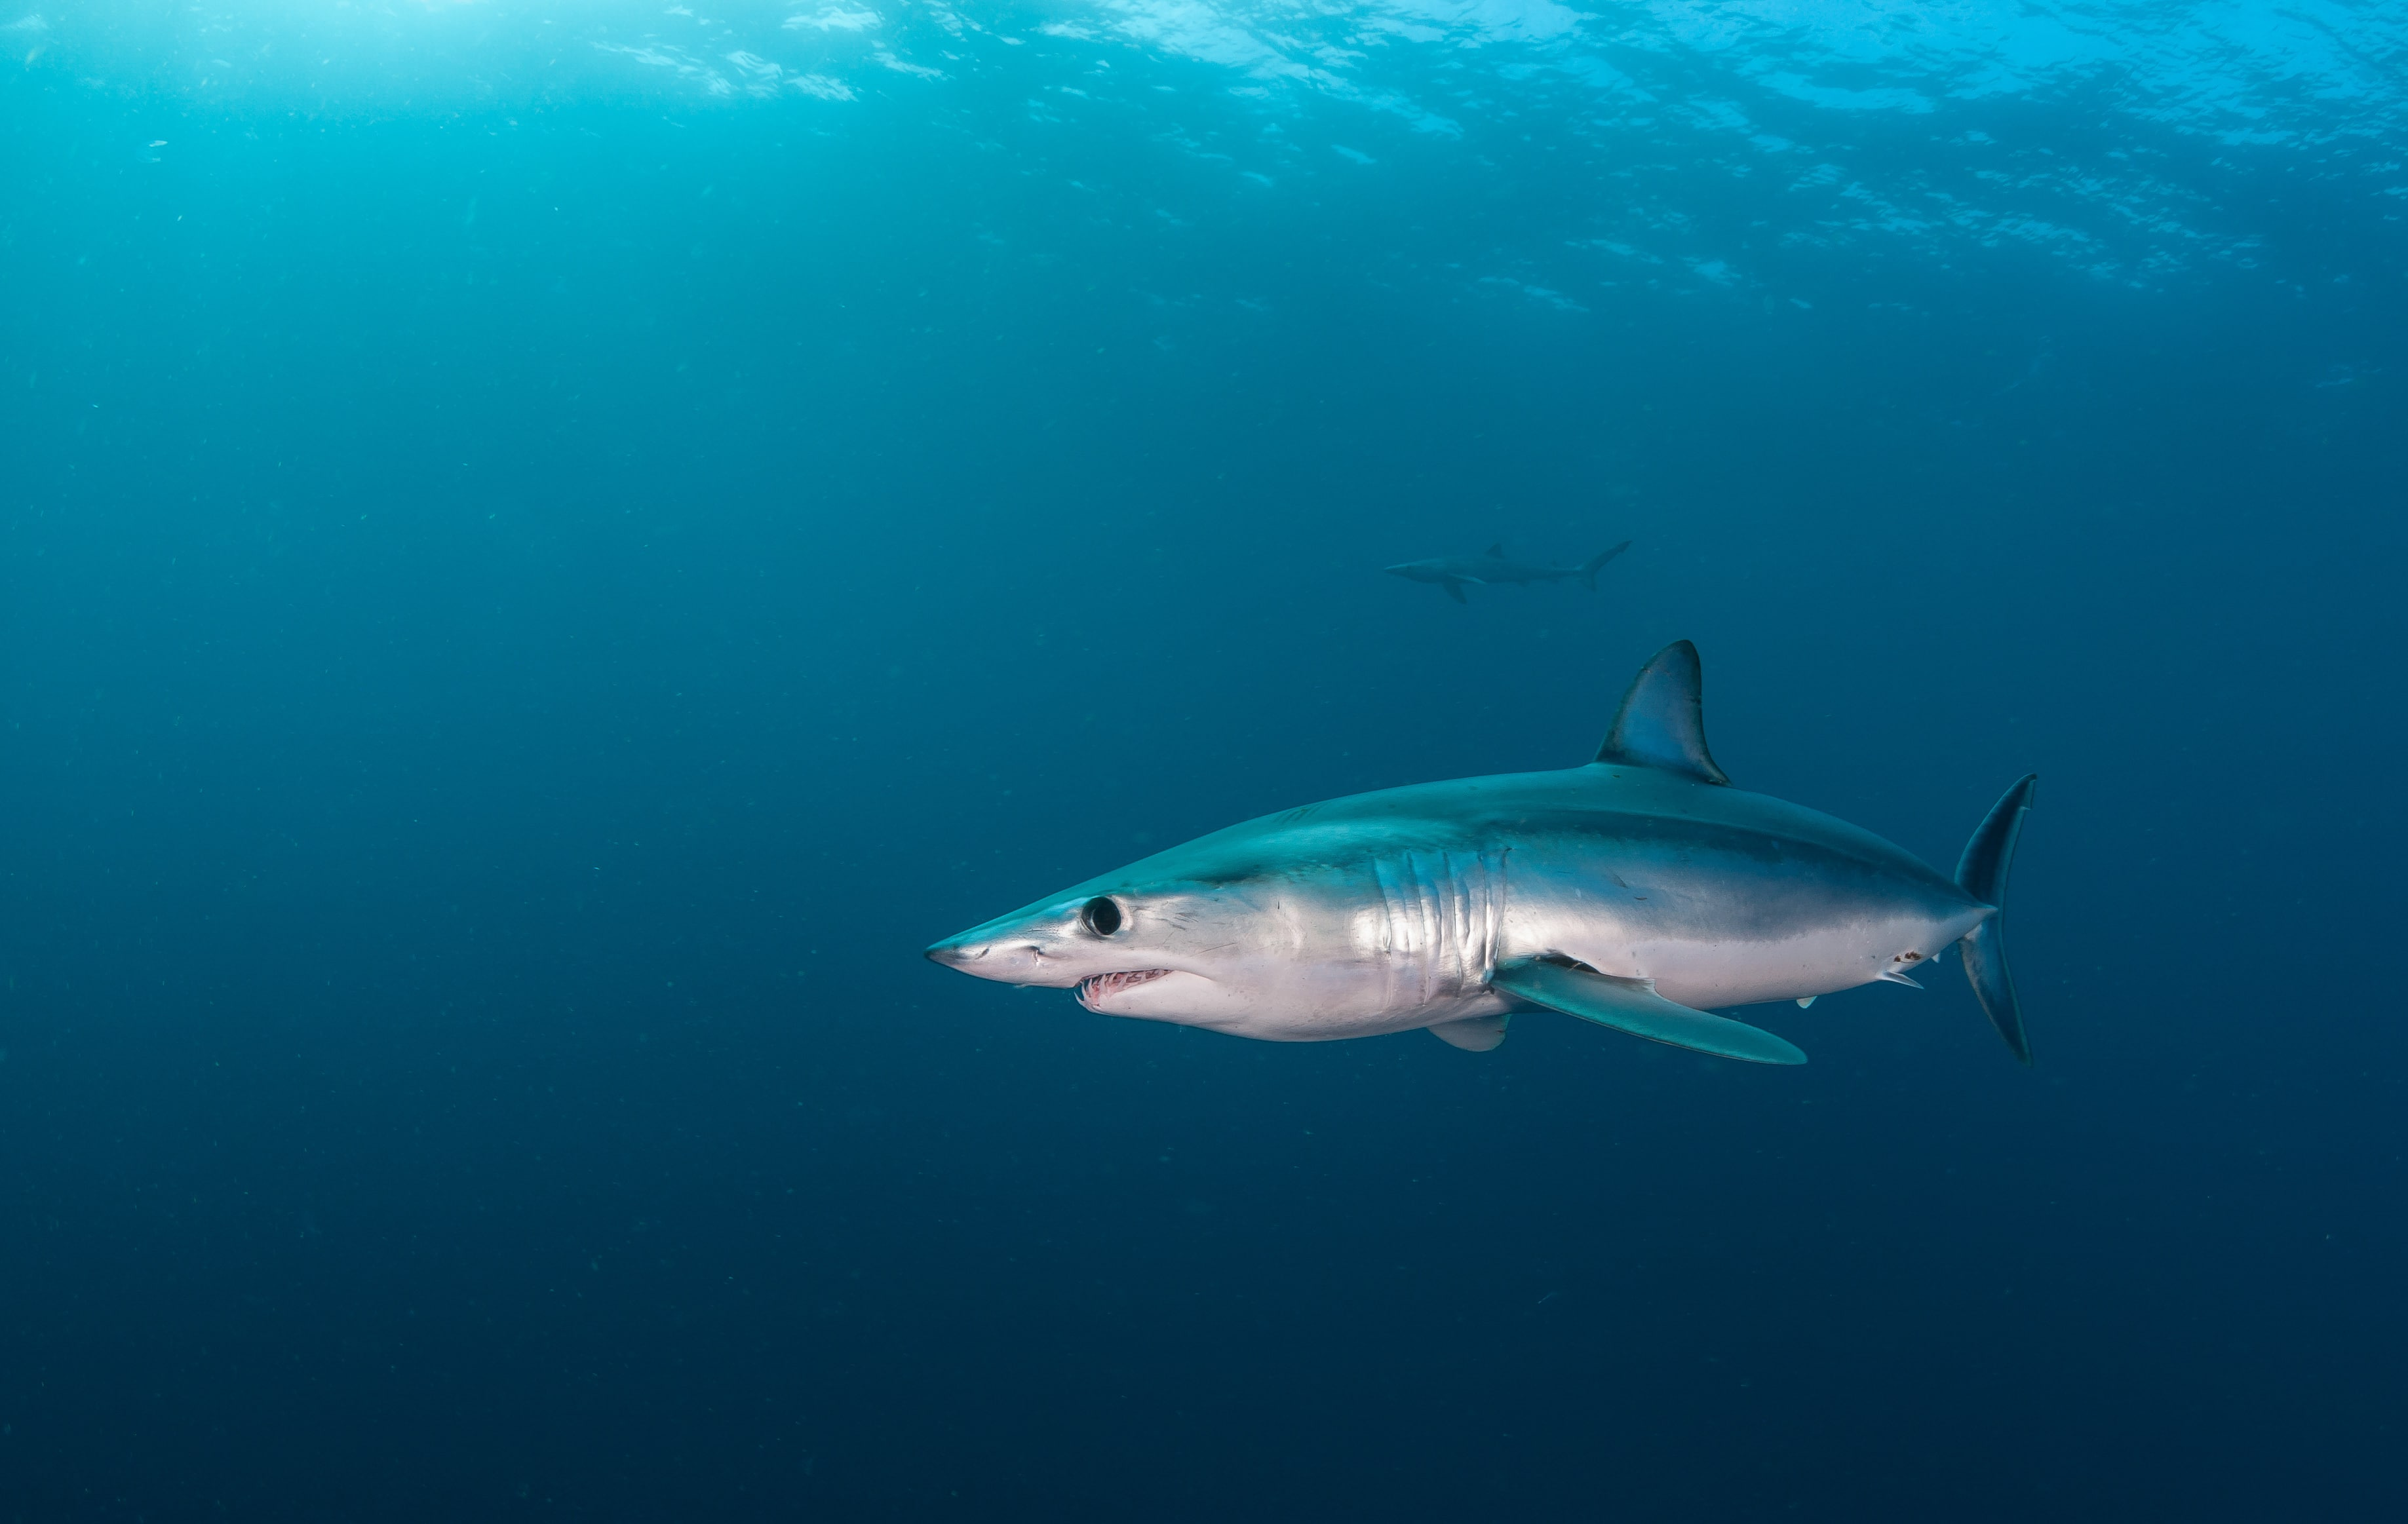 Short fin mako shark underwater view offshore from Cape Town, South Africa. (Adobe Stock)